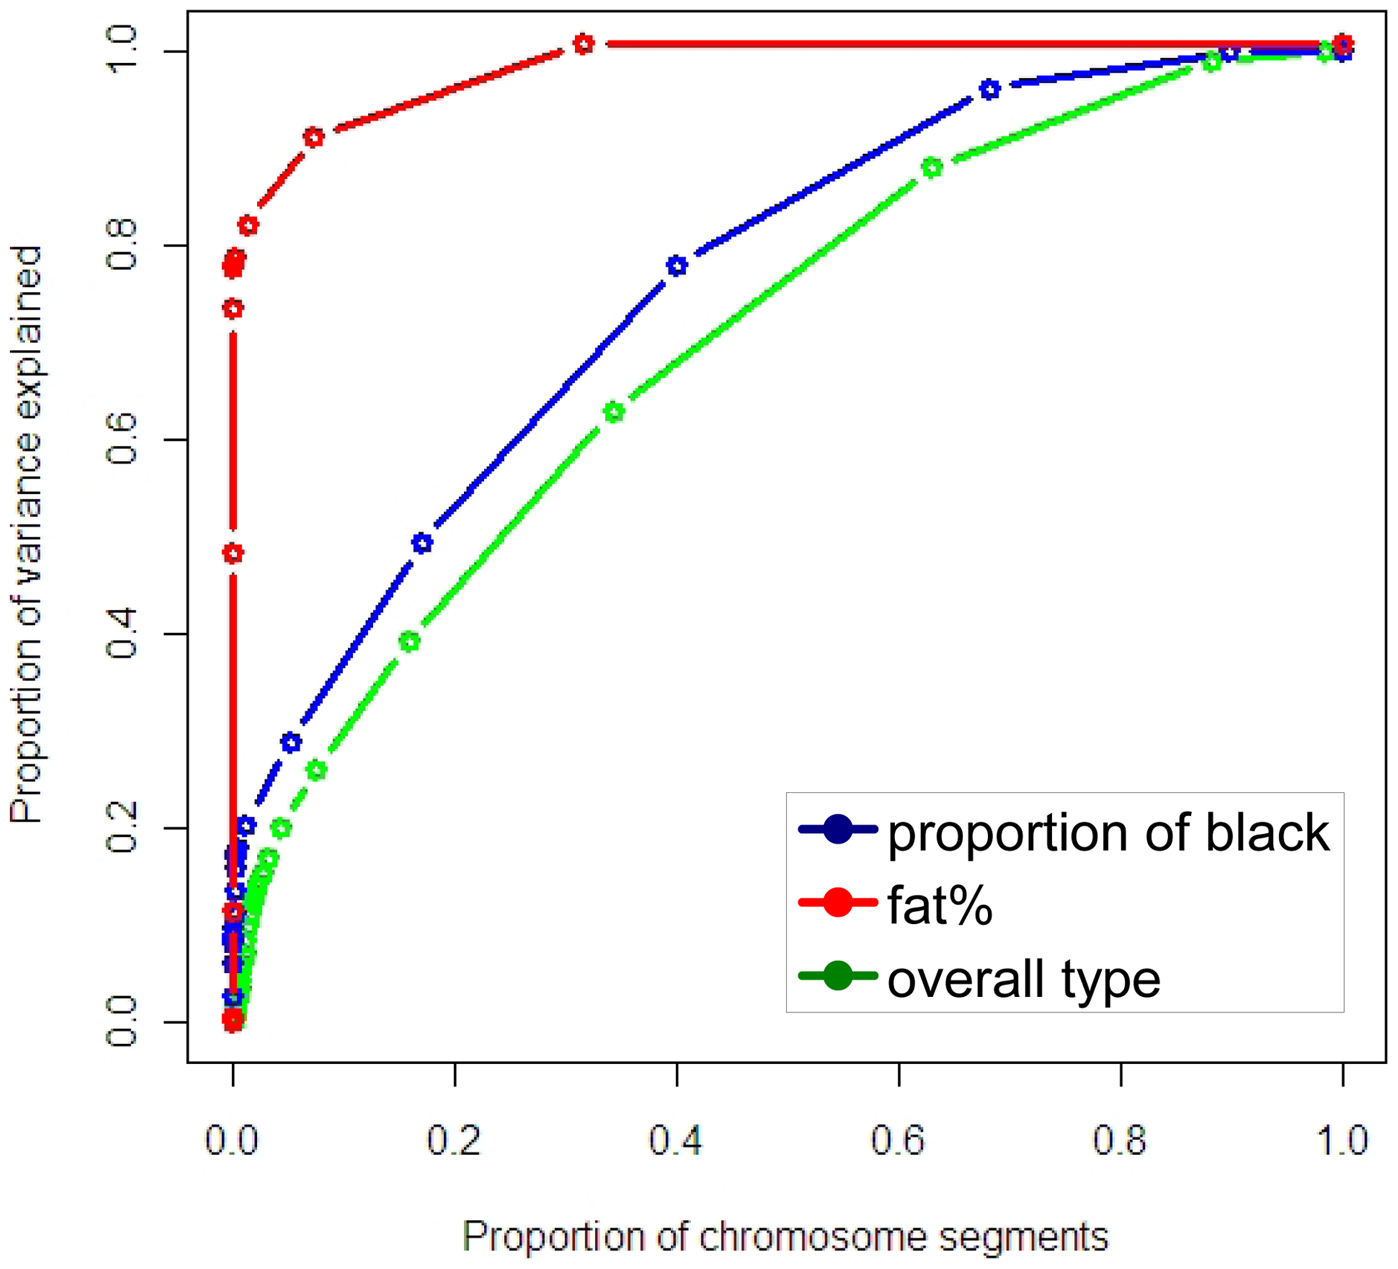 Cumulative proportion of variance explained by chromosome segments, ranked from most to least variation explained, derived from the distribution of proportion of variance explained.